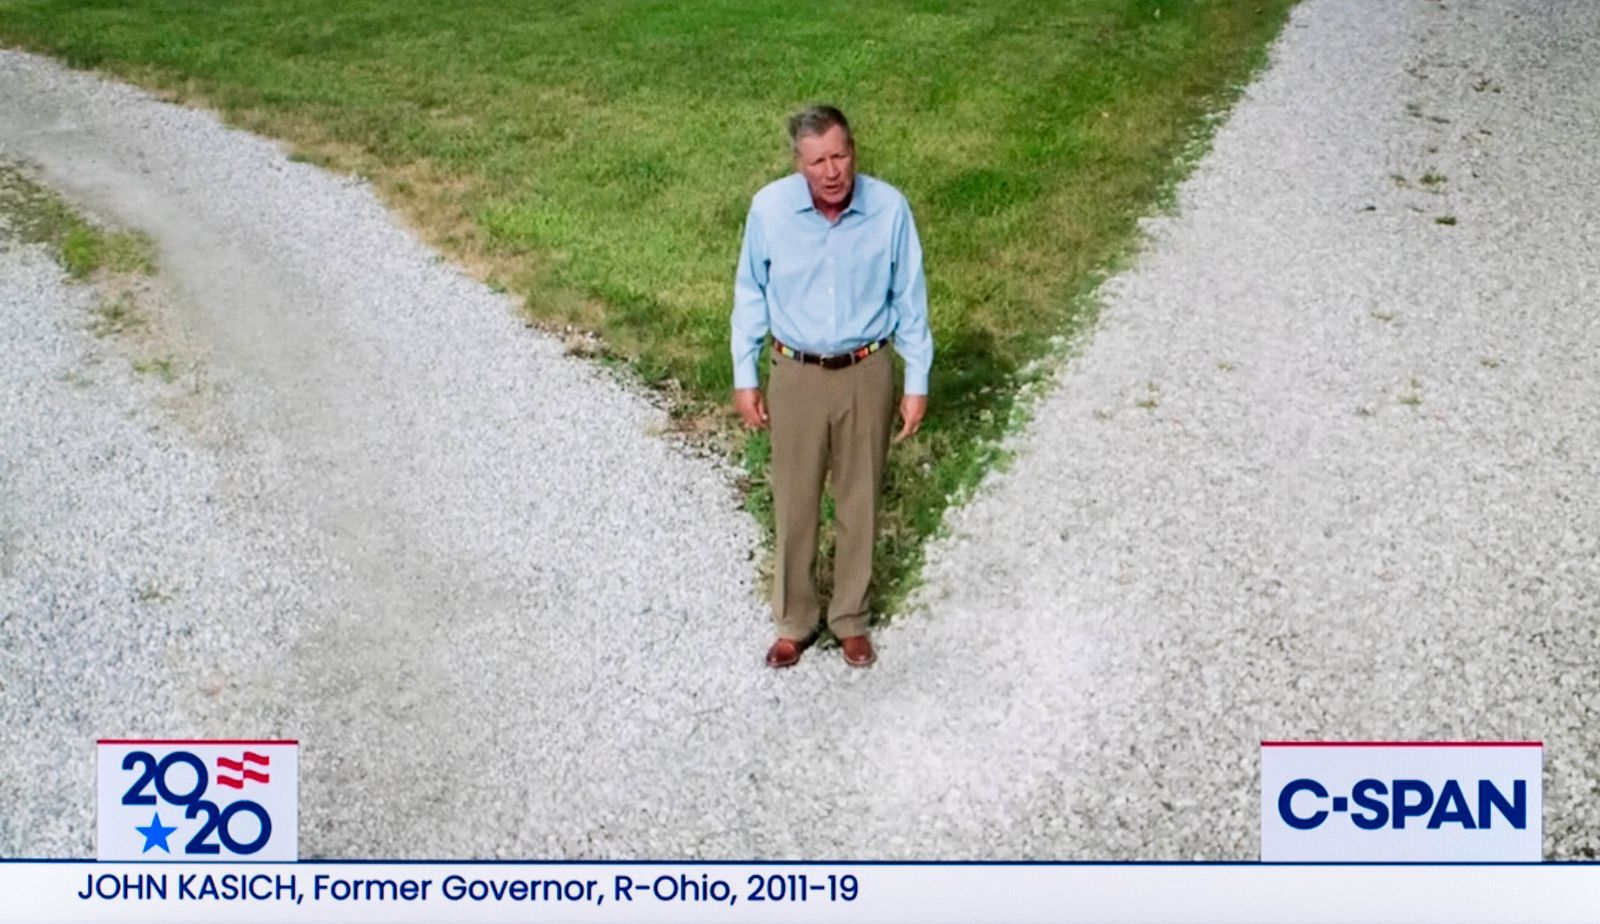 August 17, 2020 - Milwaukee, Wisconsin, U.S. - A screen grab from the C-SPAN coverage of former Governor JOHN KASICH (R